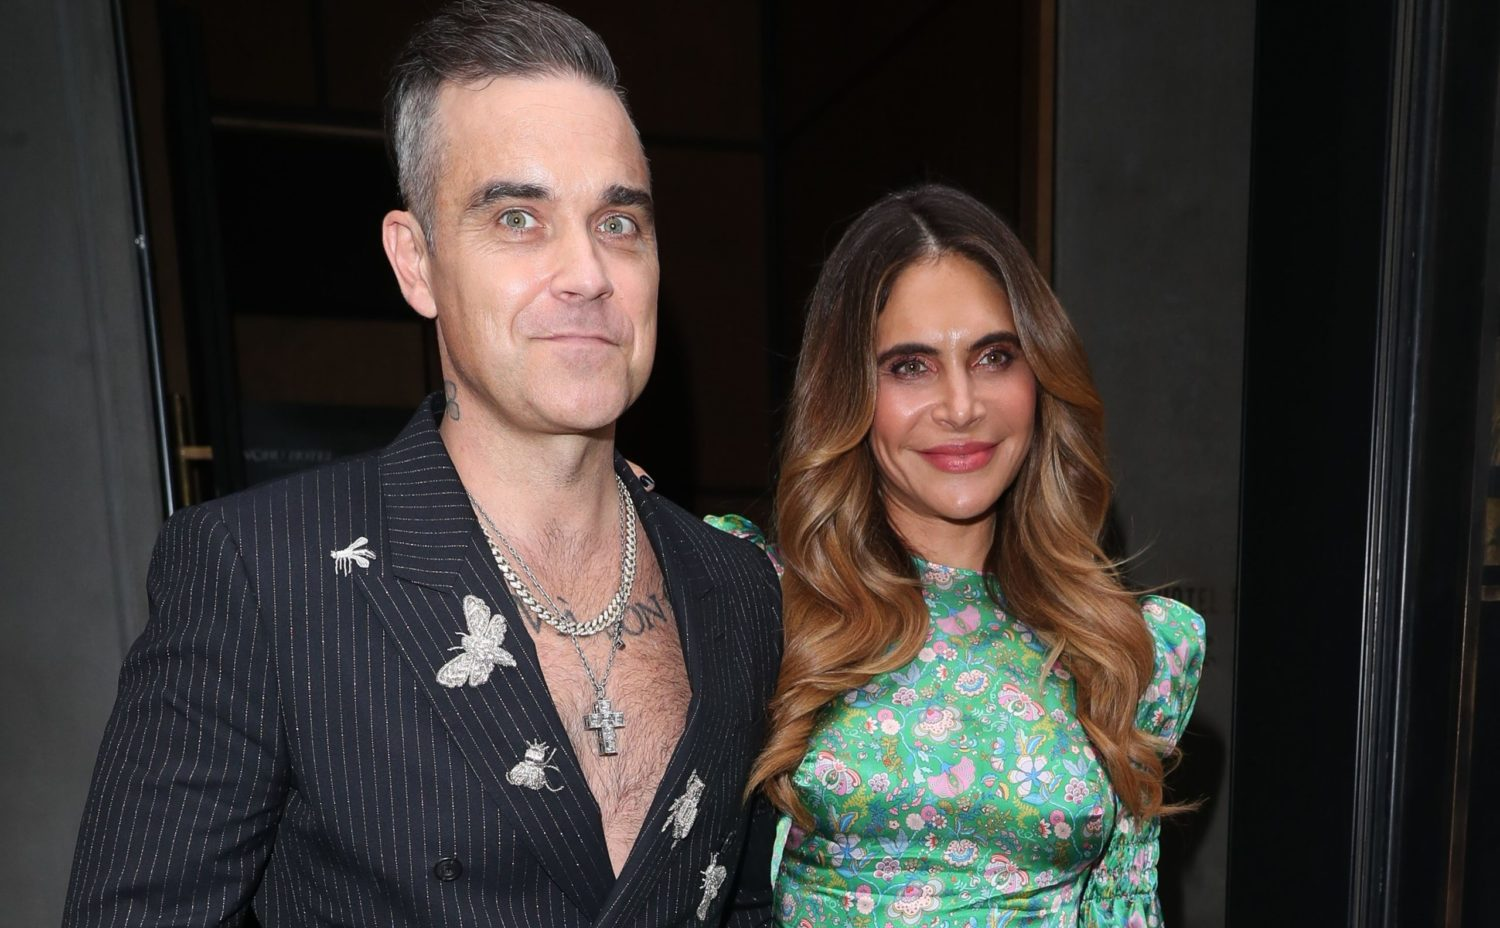 Robbie Williams and Ayda Field open up about threat of beheading